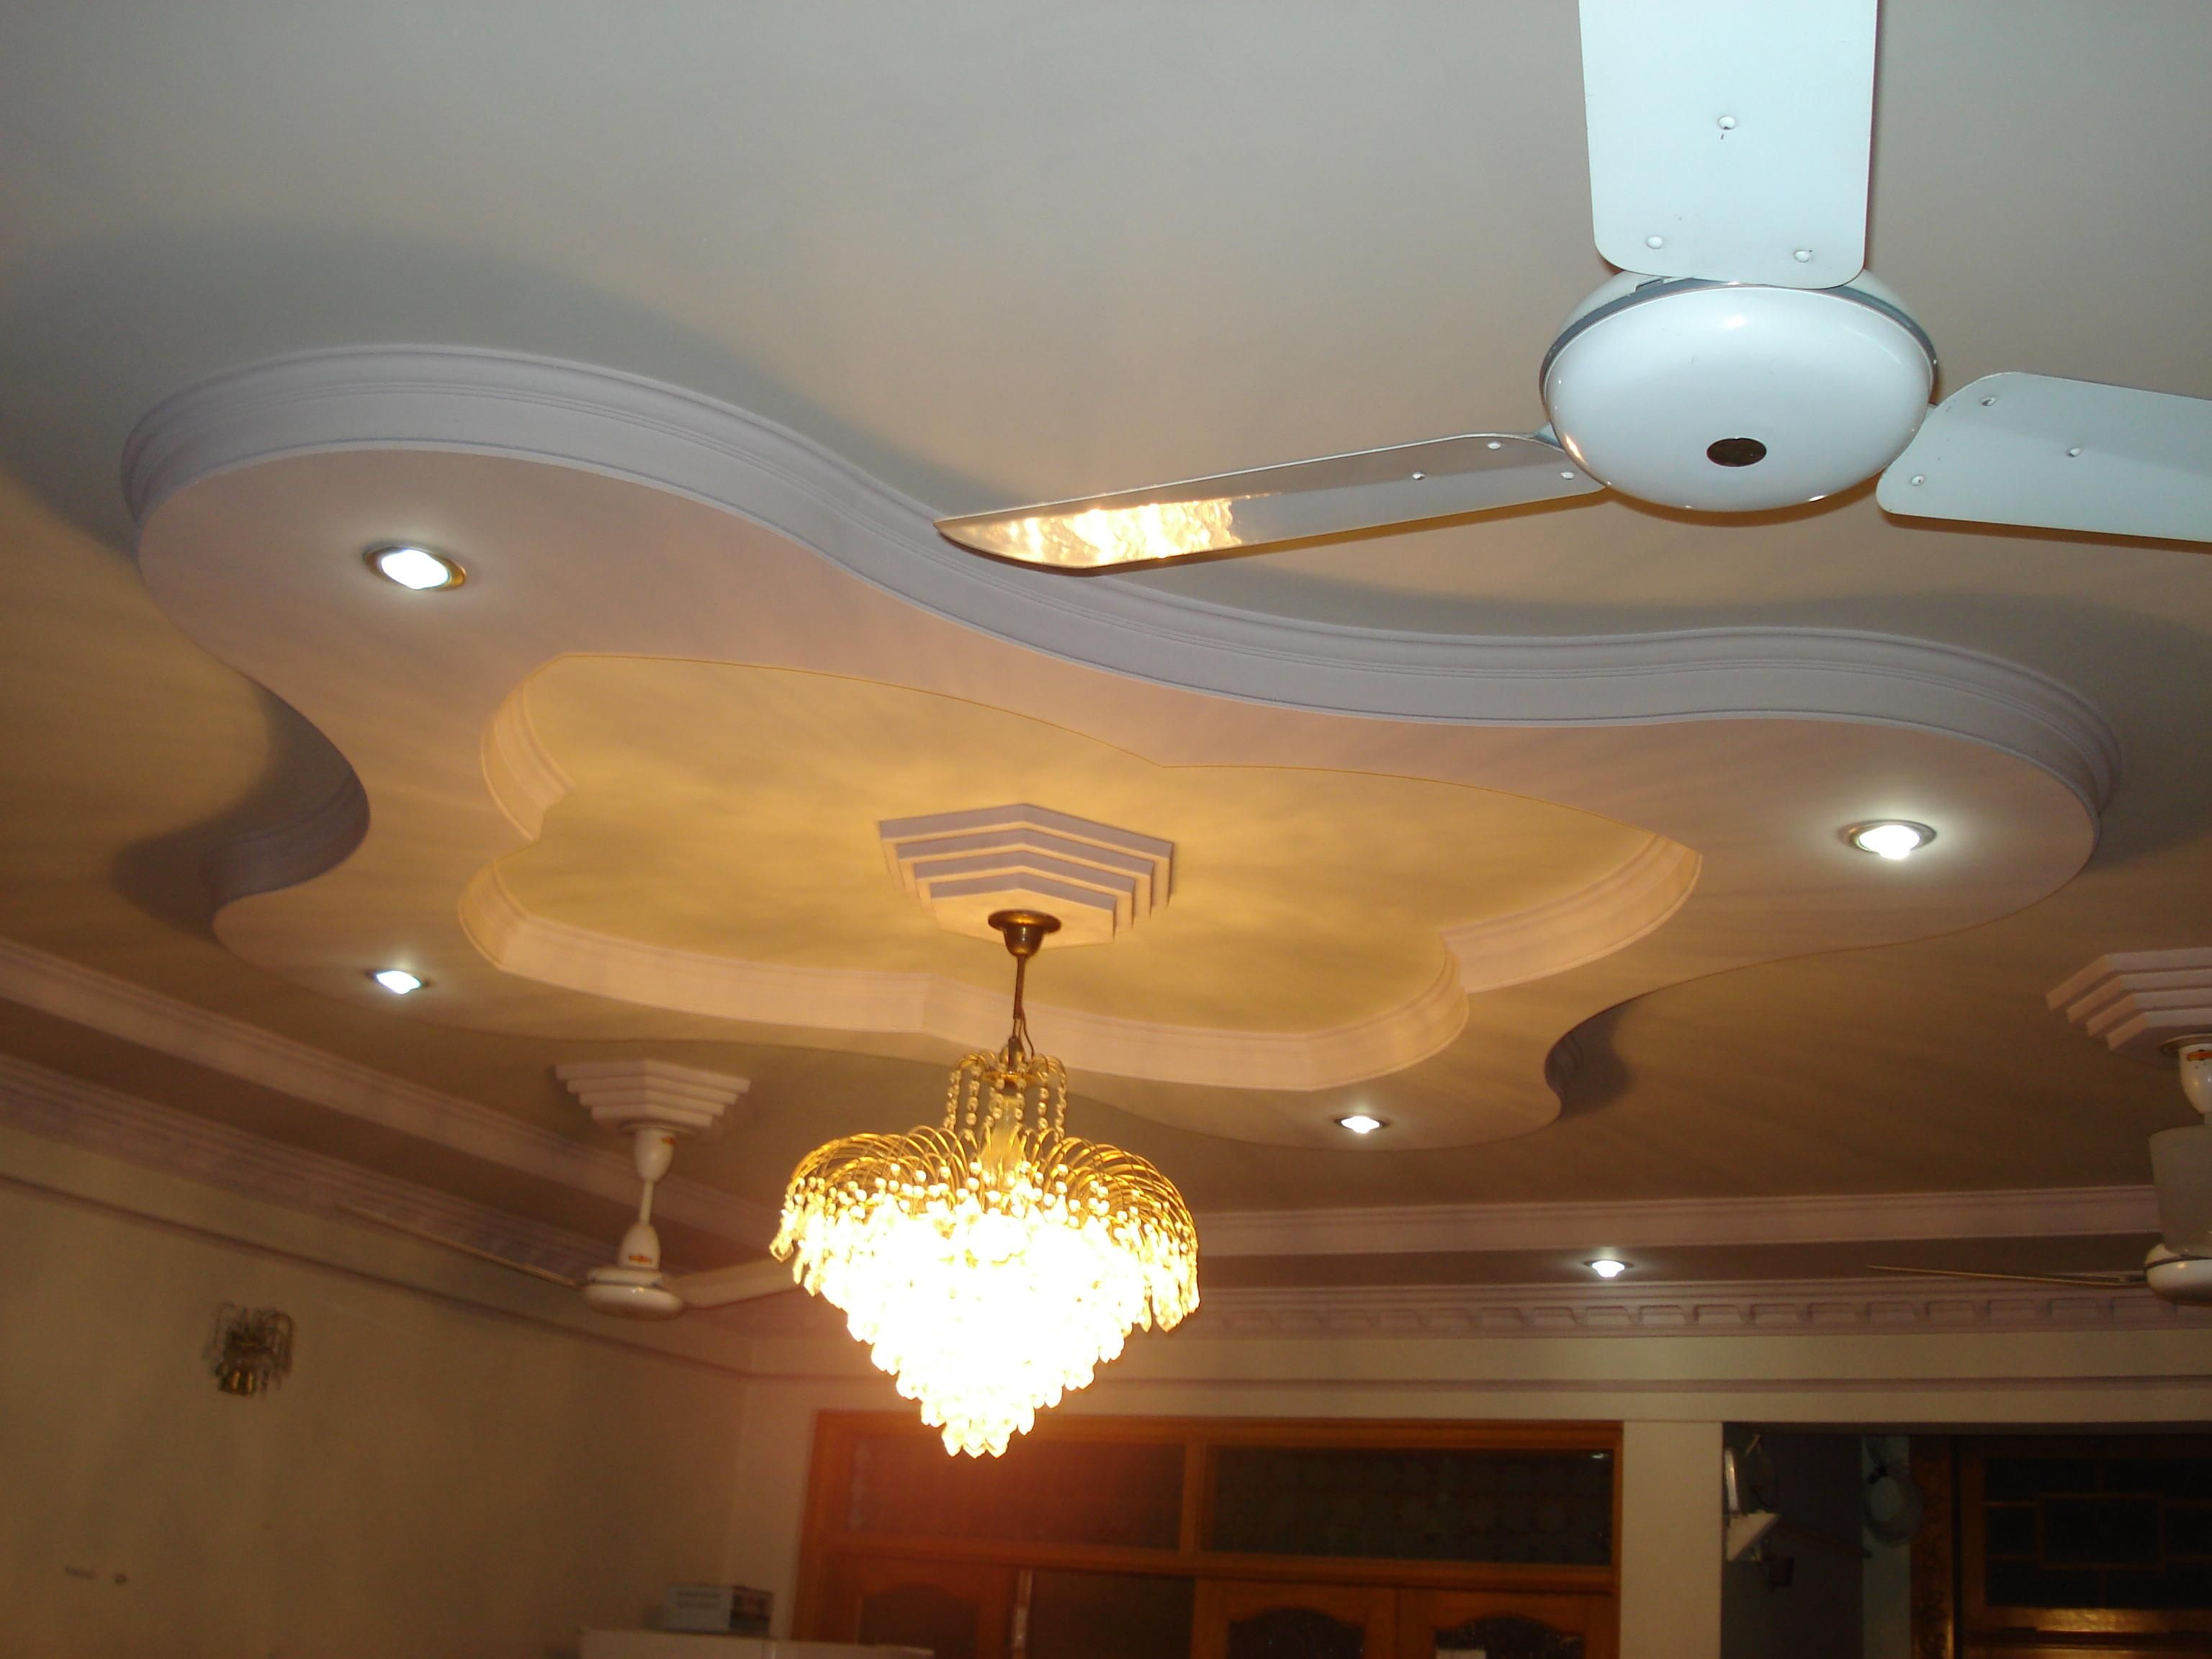 Modern False Bedroom Designs Ceiling Pop With White Fan On Plafond As Well Great Glass